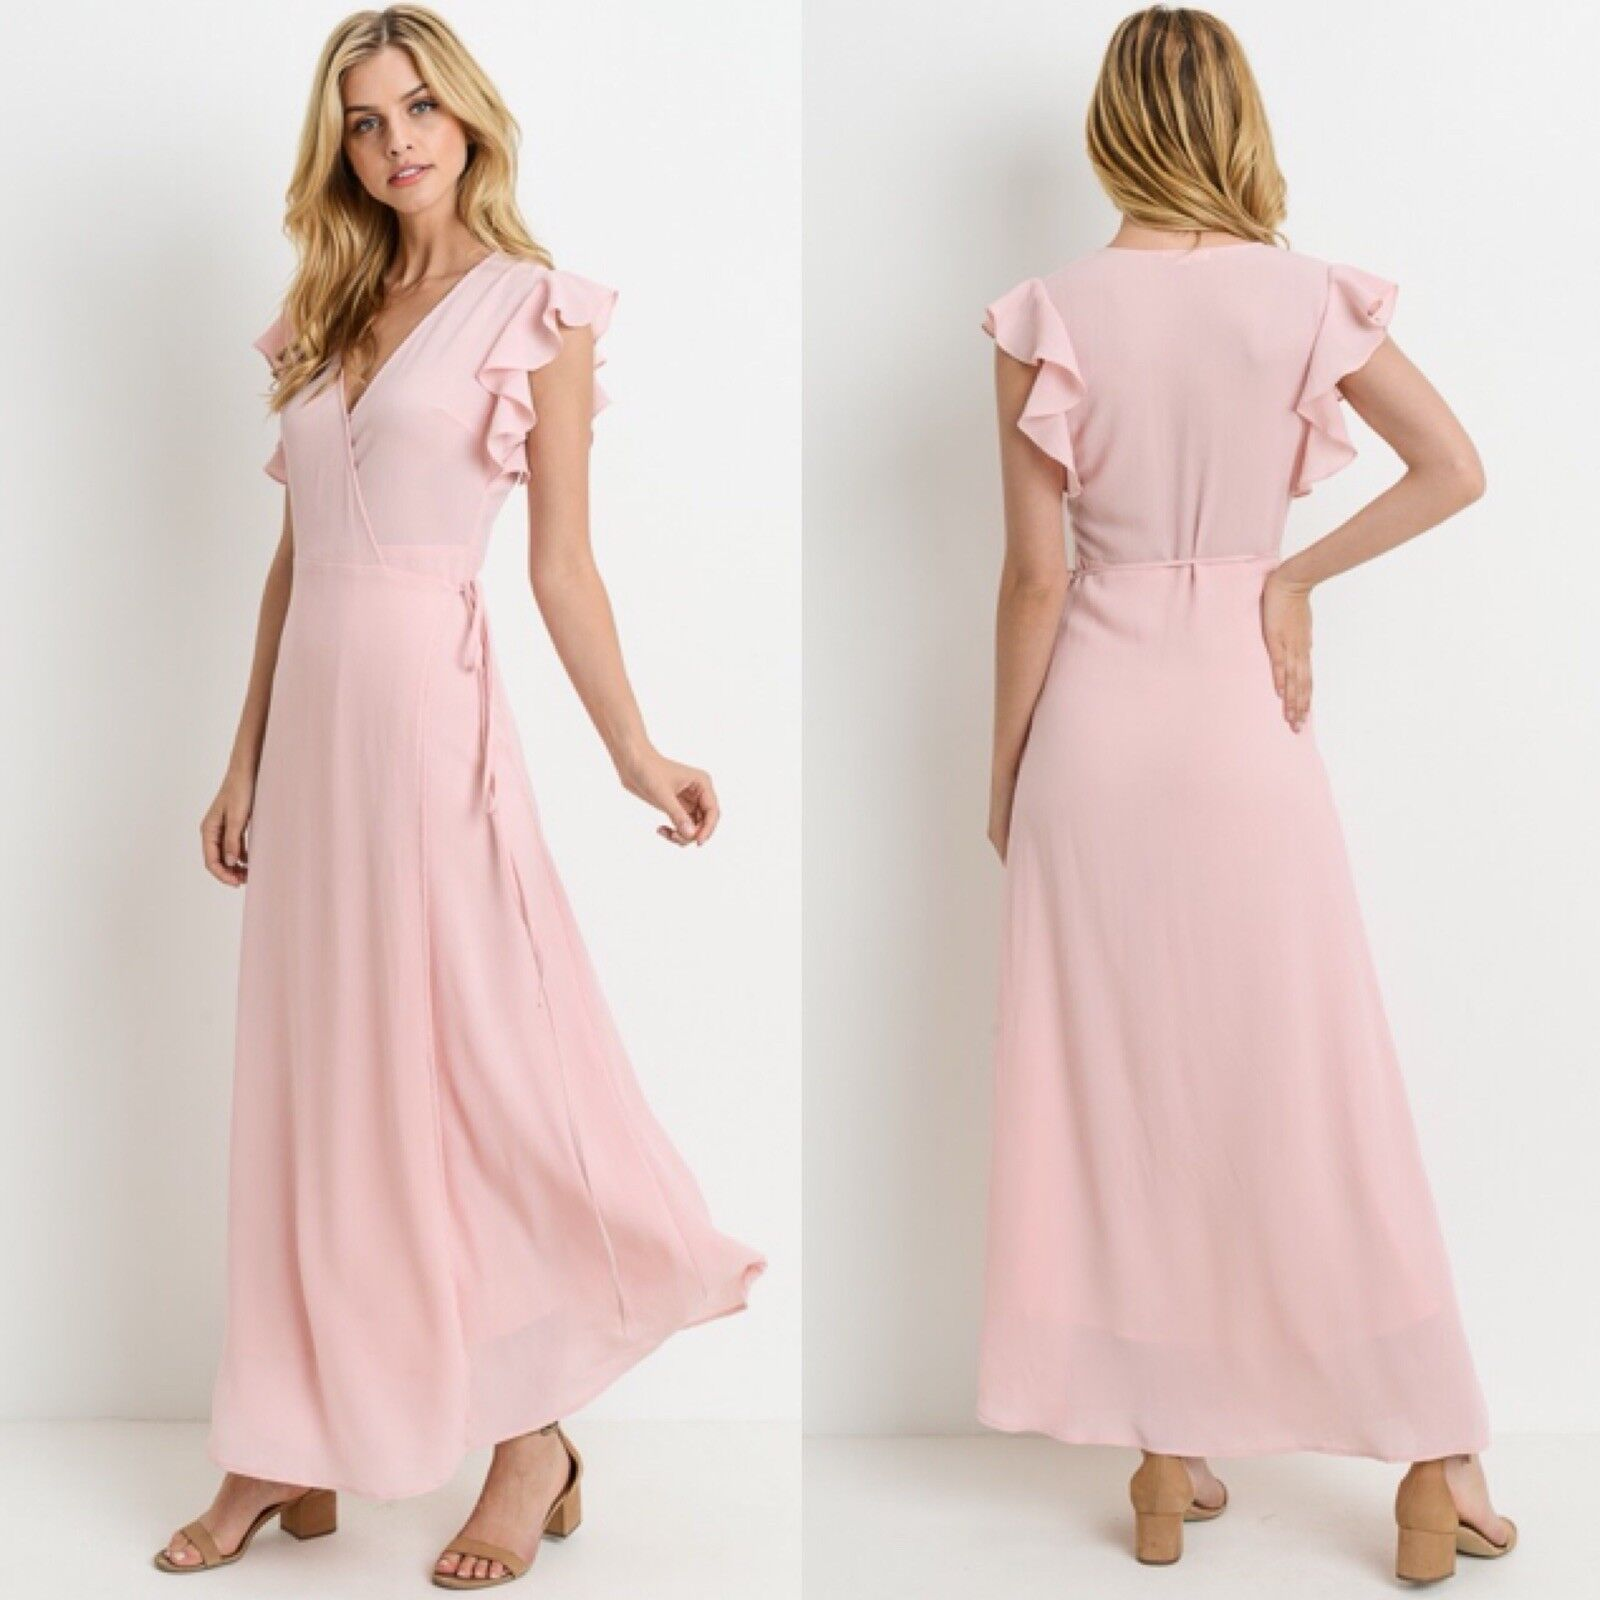 NEW bluesh Pink Womens Large Wrap Maxi Dress Ruffle Shoulders Boutique